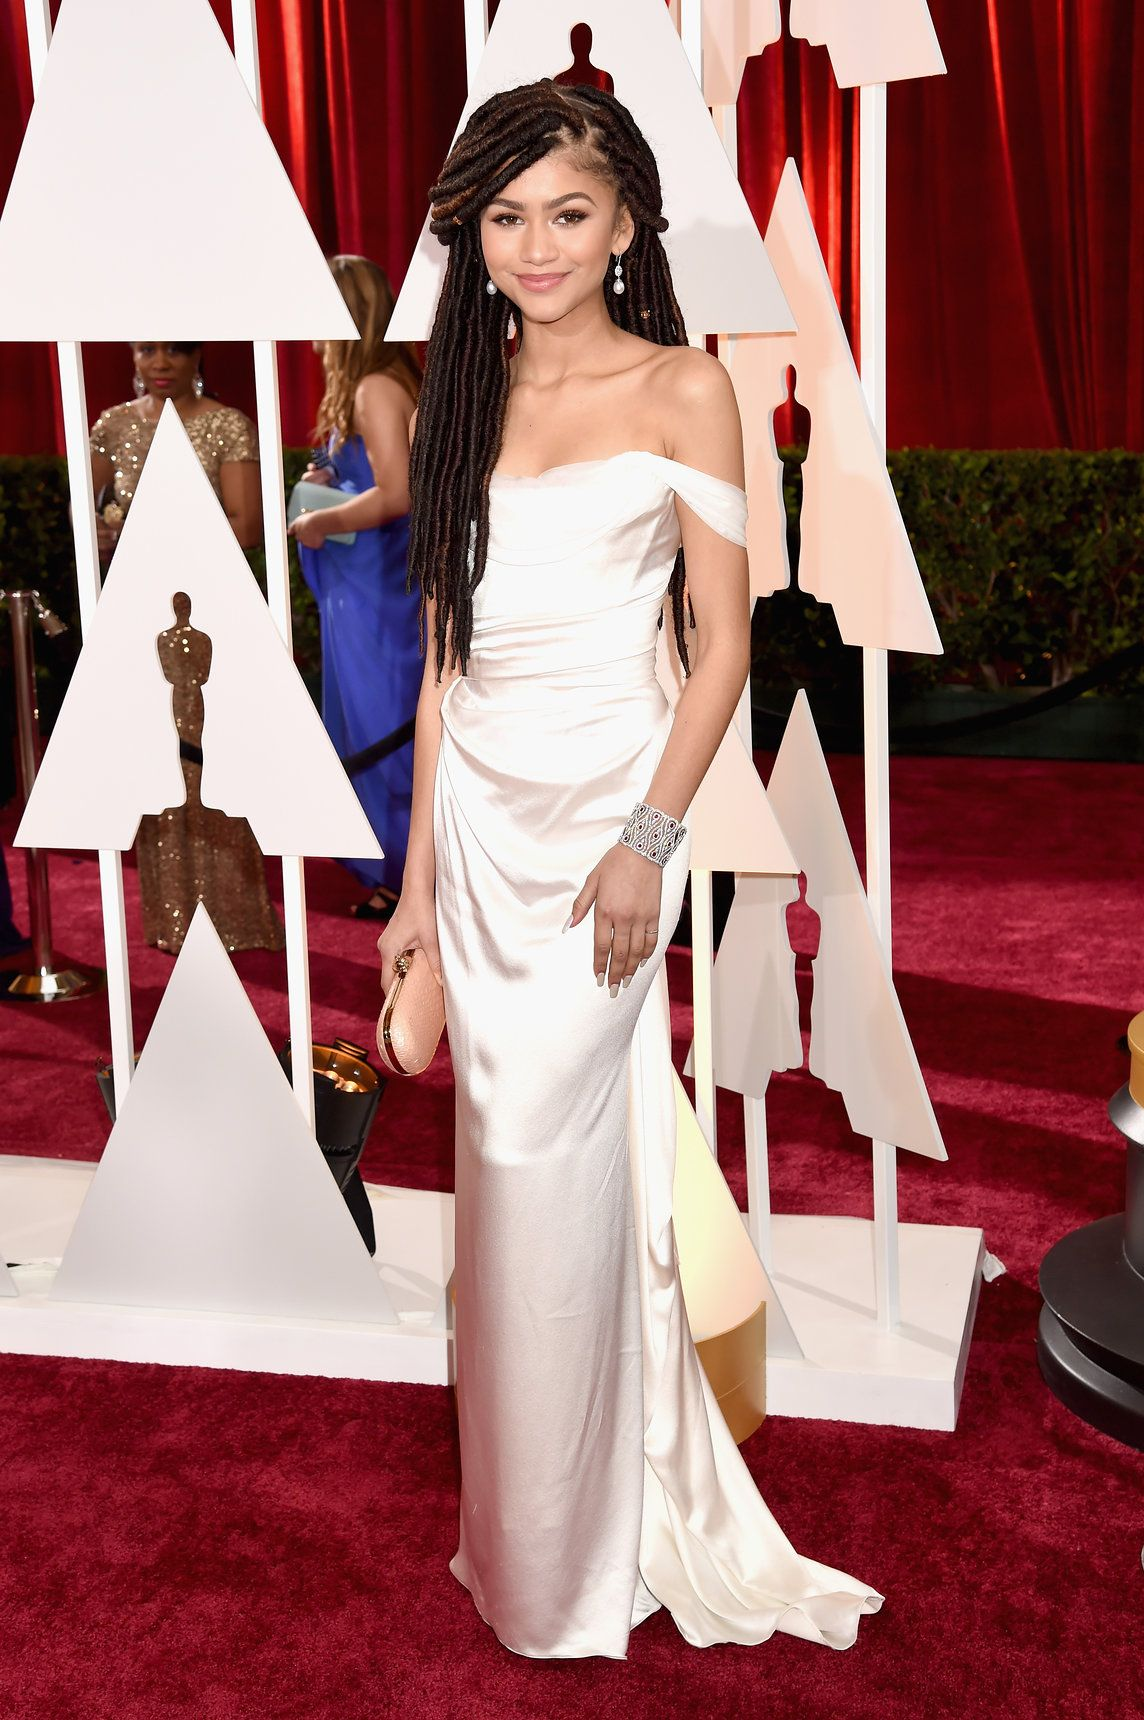 81cc45b8cd5 Oscars 2015  The Best Dressed Celebrities on the Red Carpet – Vogue Zendaya  in Vivienne Westwood and Chopard jewelry  2015Oscars  redcarpet  zendaya